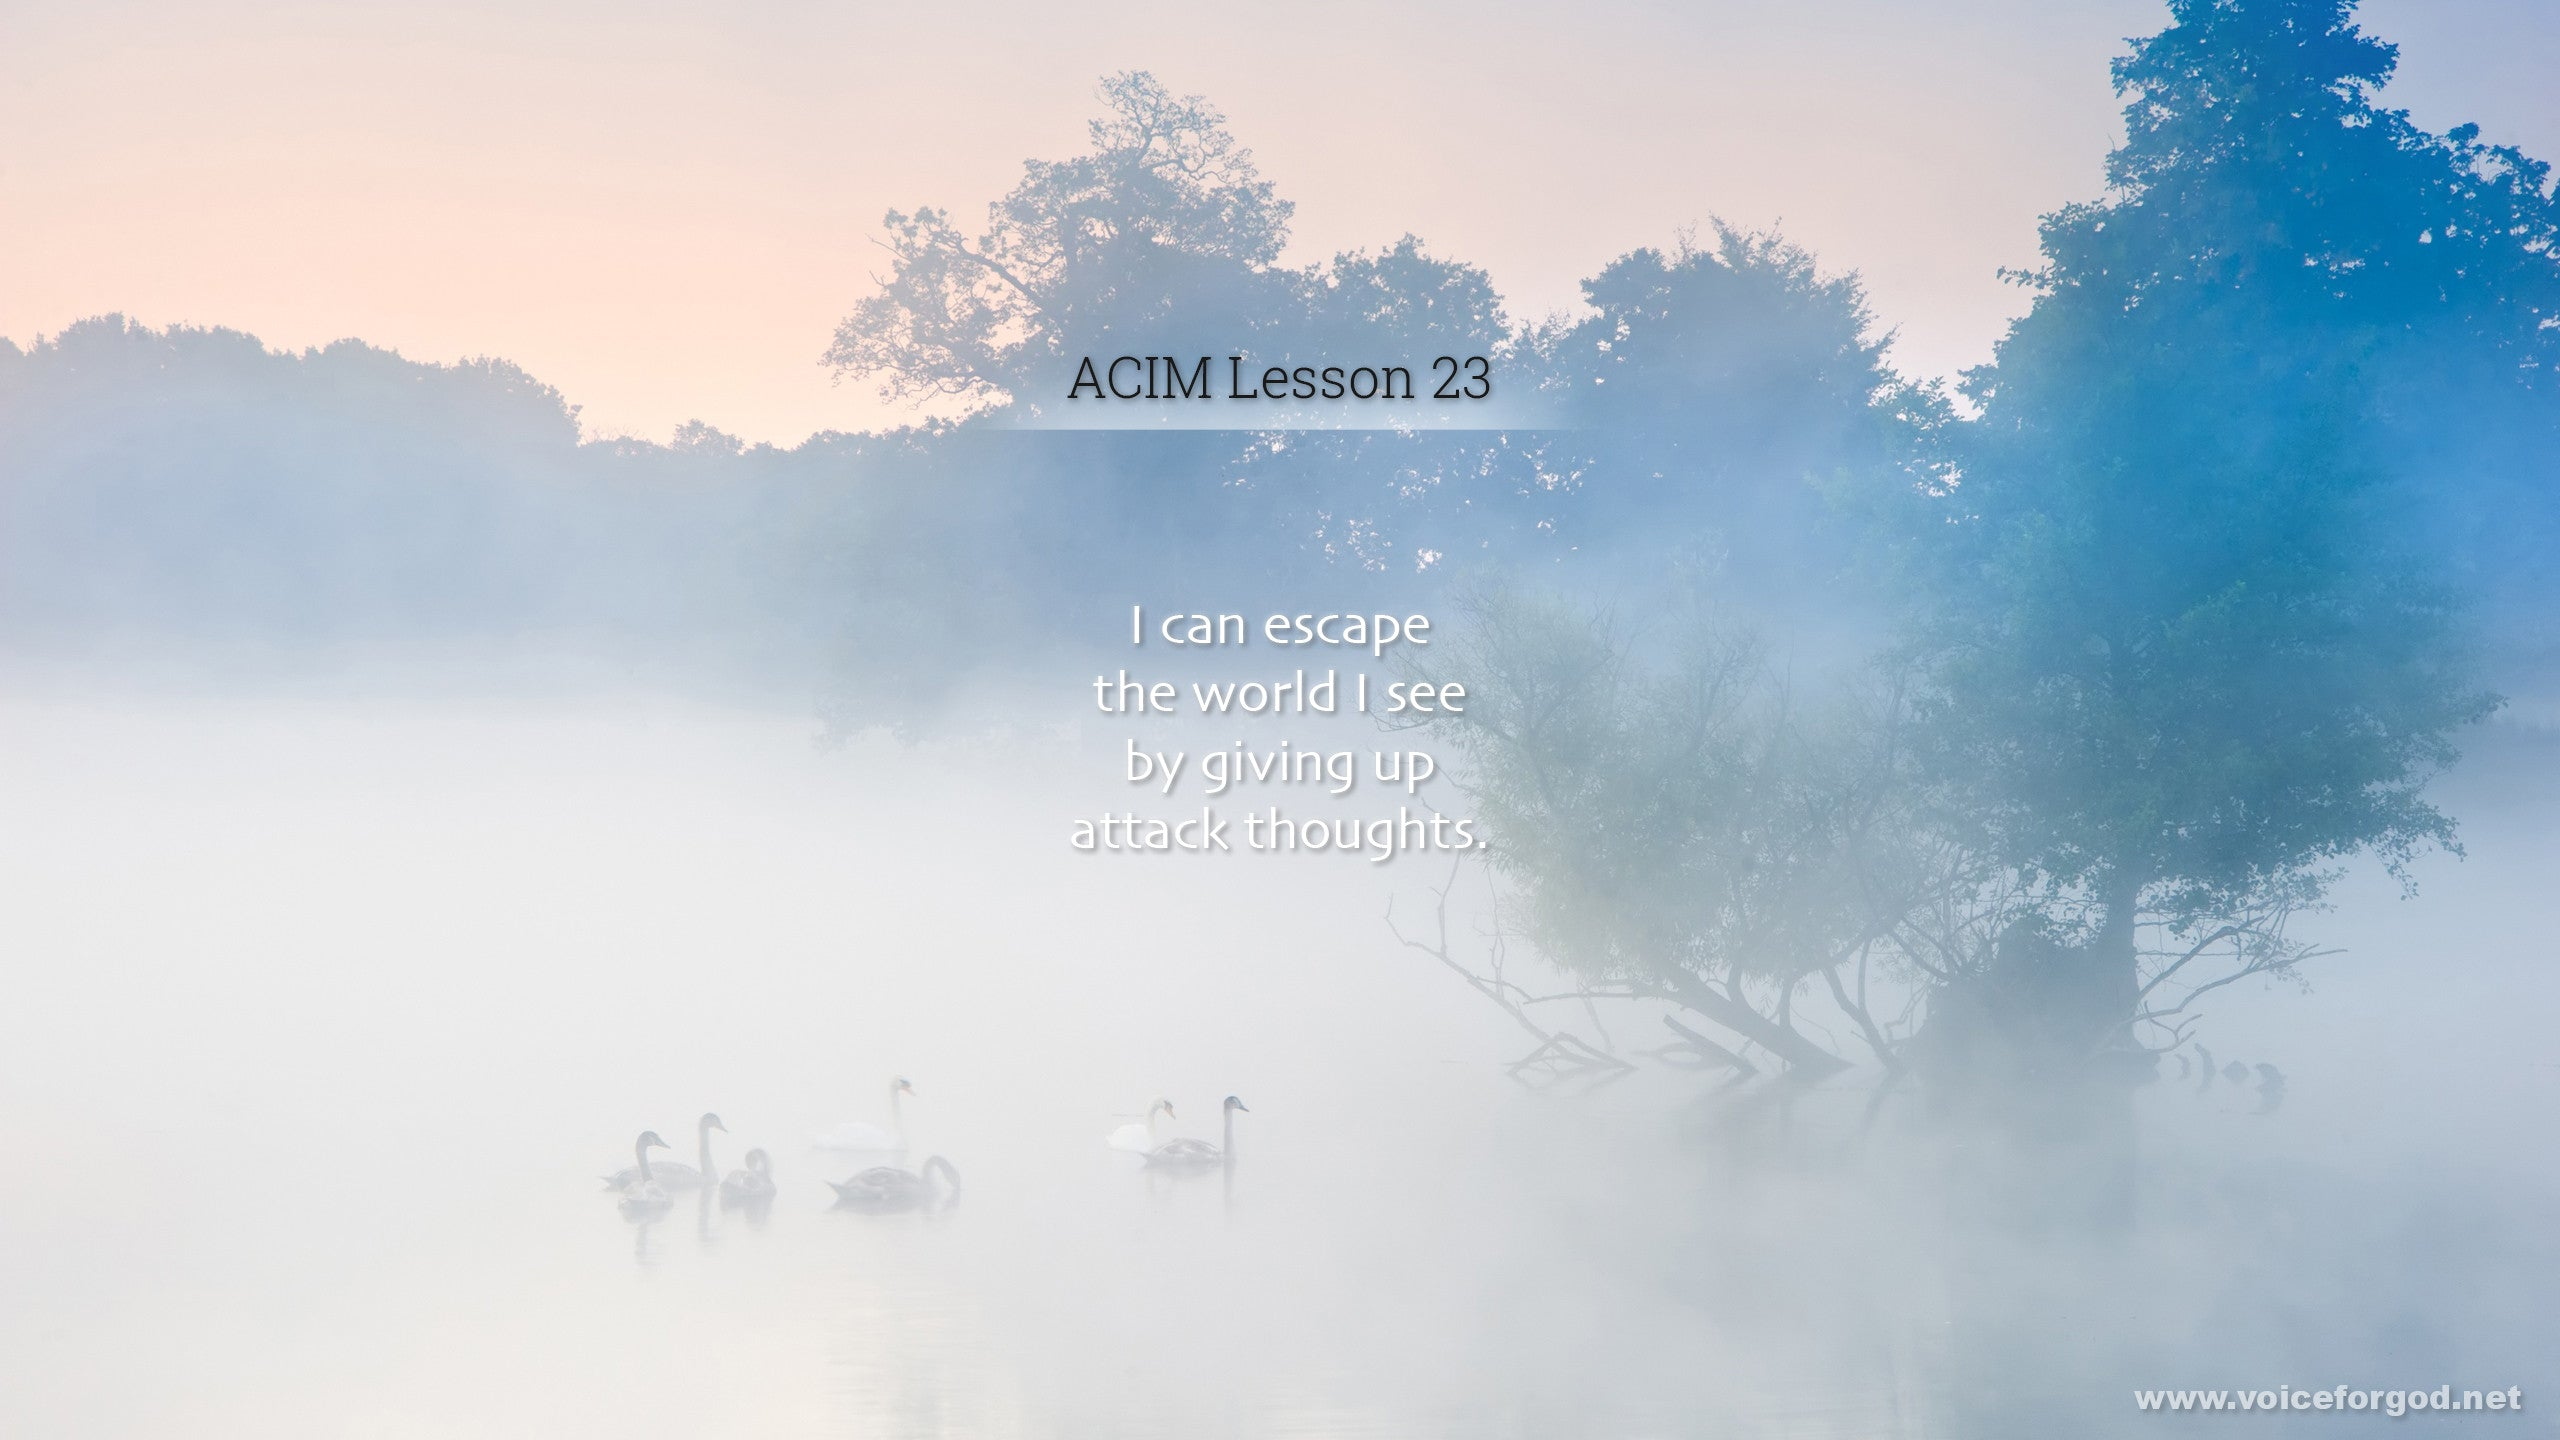 ACIM Lesson 23 - A Course in Miracles Workbook Lesson 23